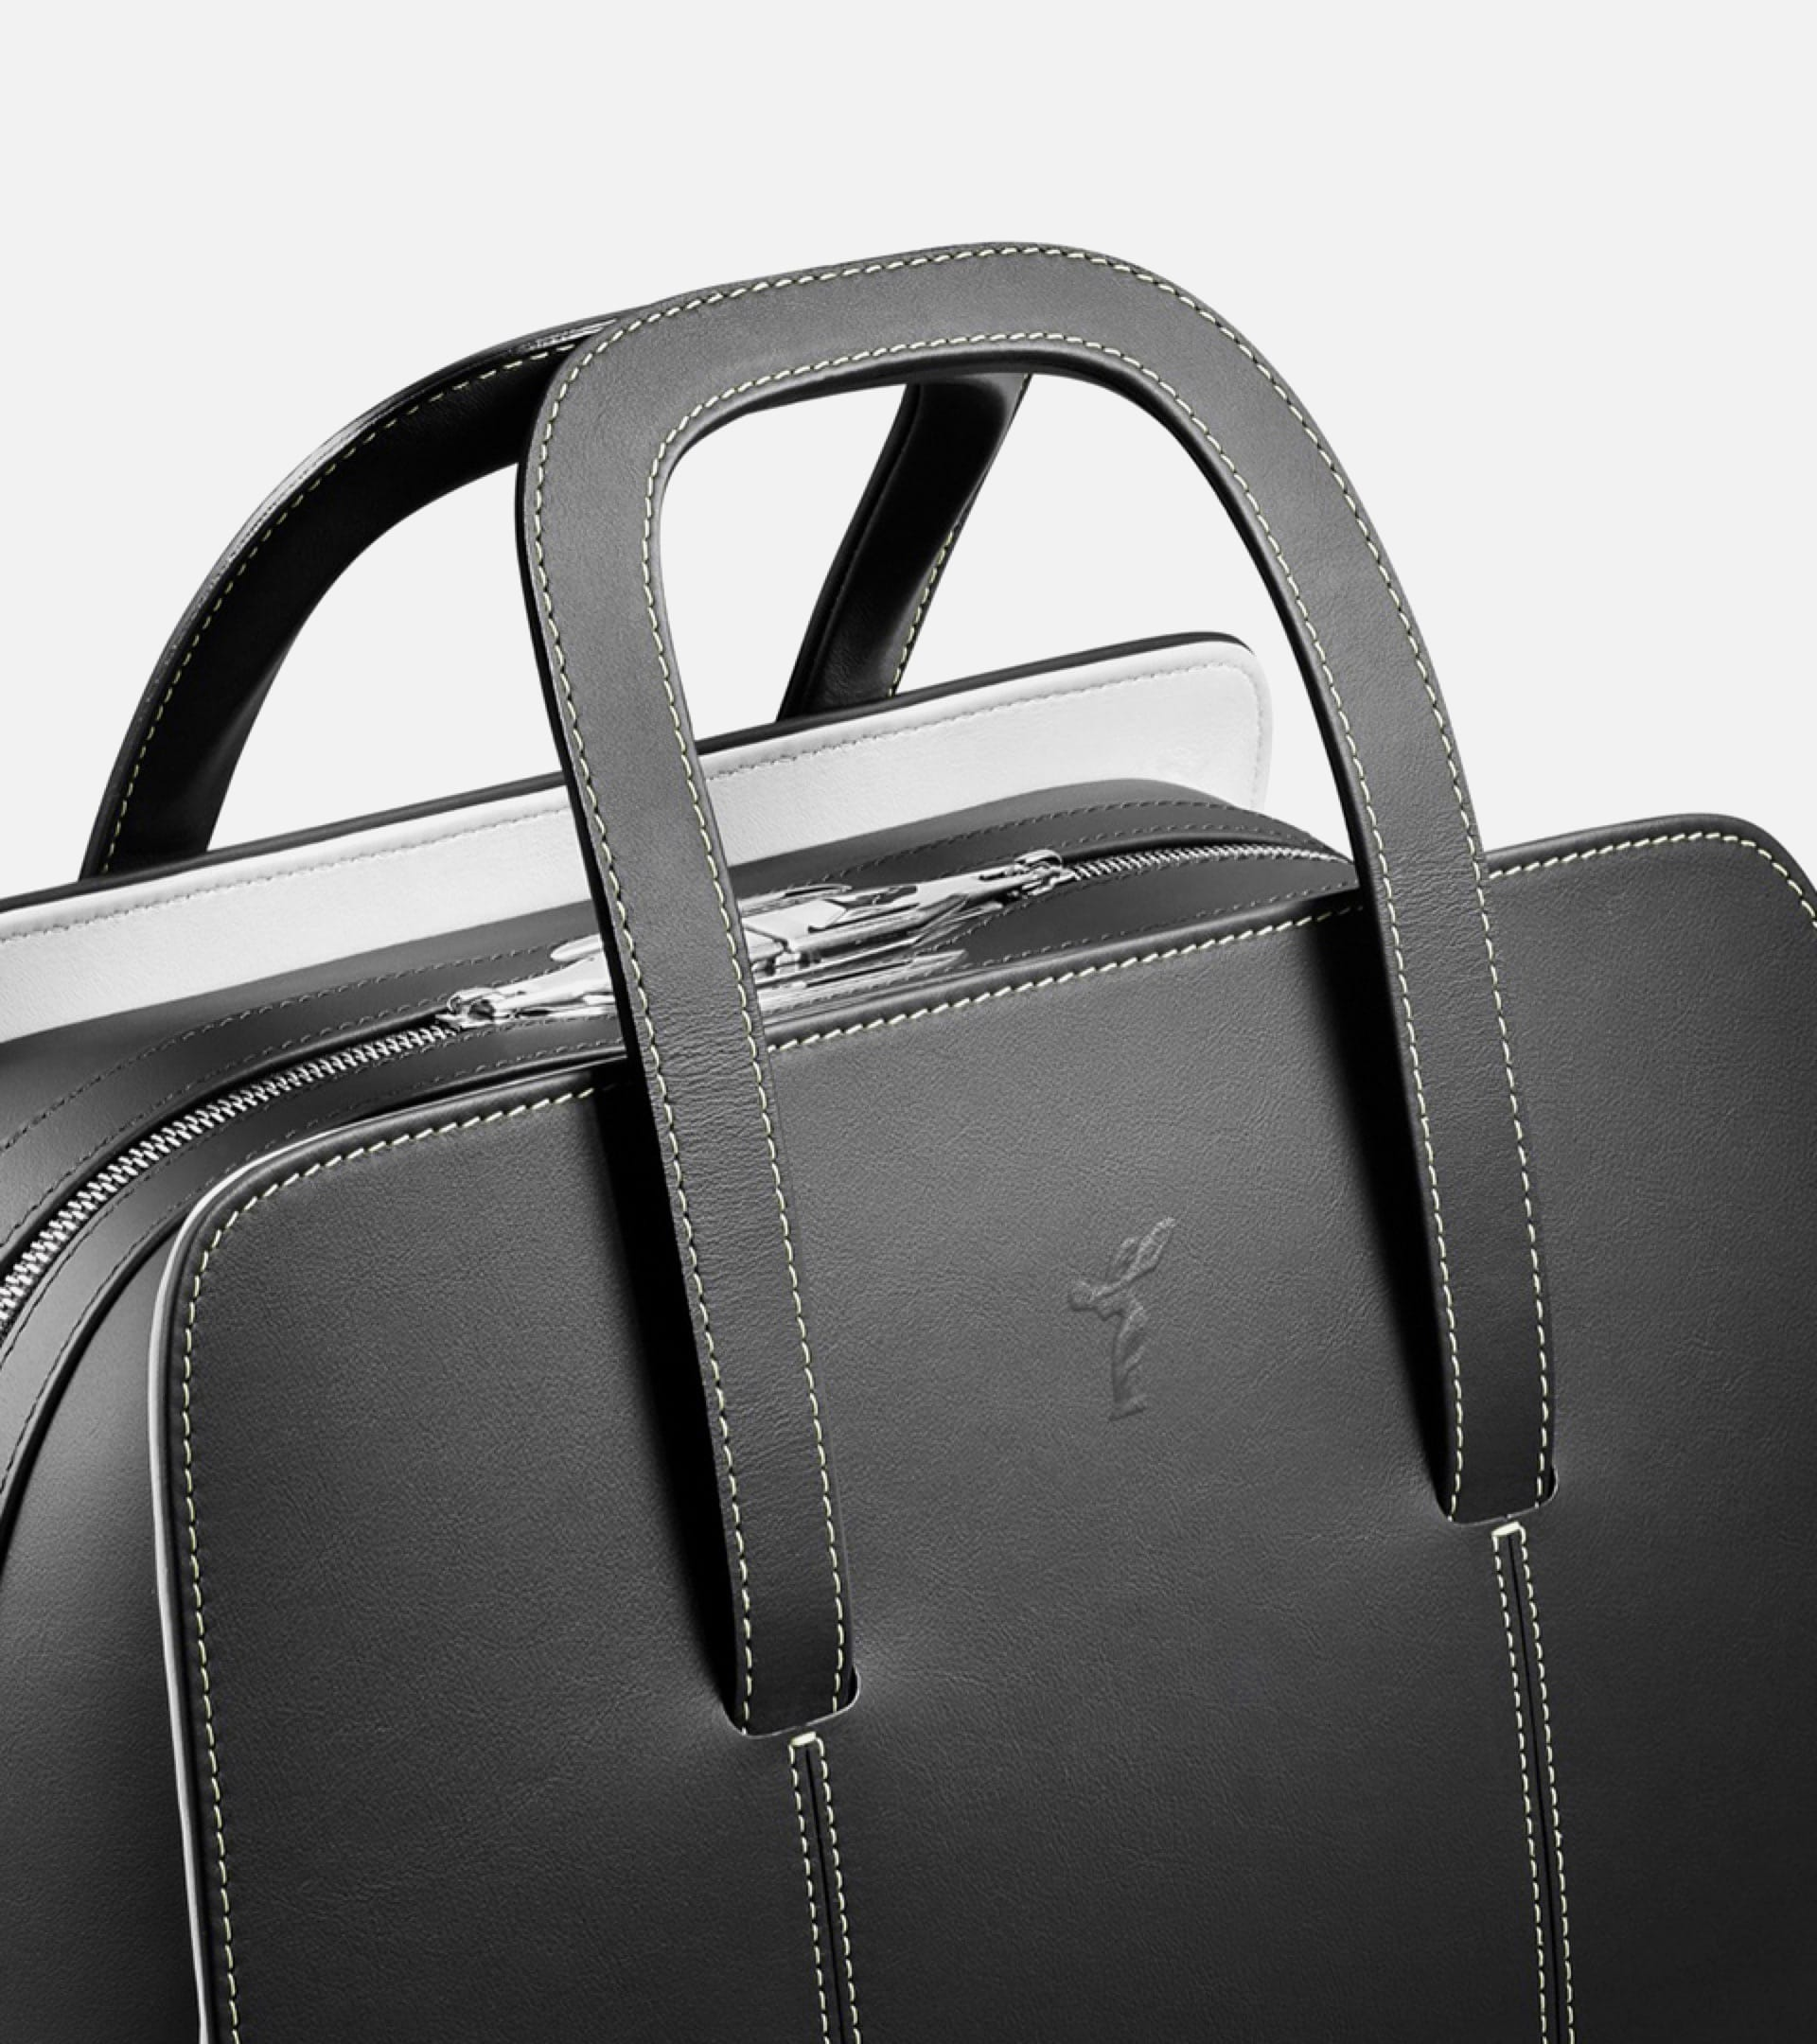 The two tone leather Long Weekender luggage with the spirit of ecstasy embossing